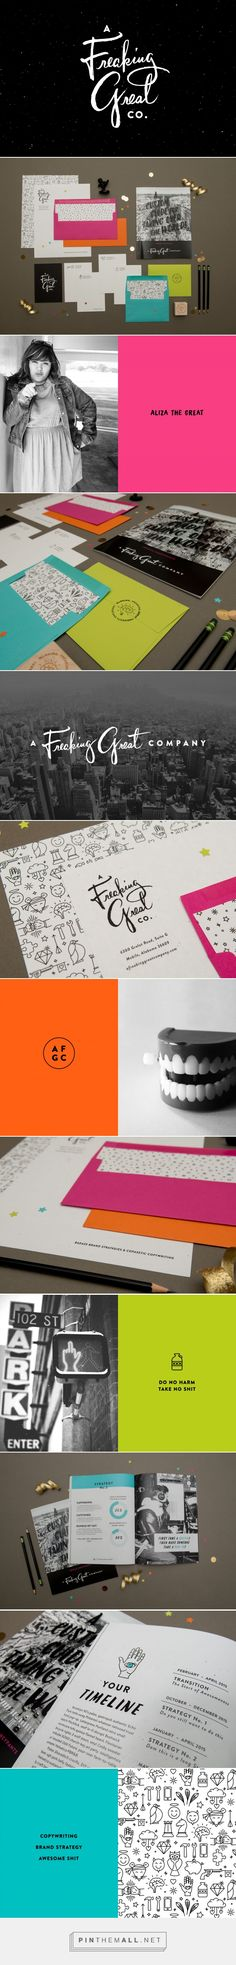 A Freaking Great Company Brand by Braizen | Fivestar Branding – Design and…